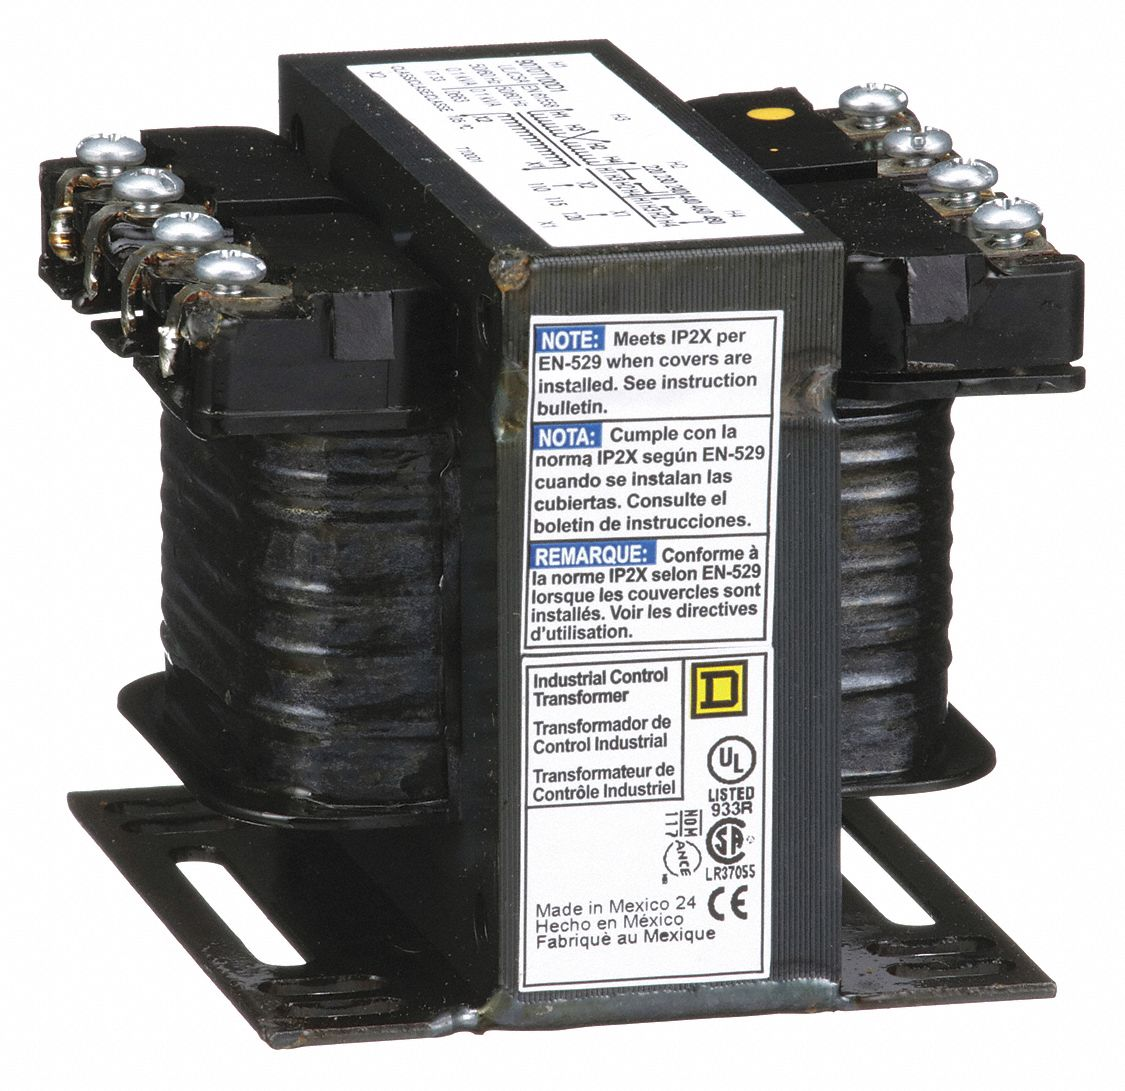 medium resolution of square d control transformer input voltage 240vac 480vac output square d transformer wiring further dayton electric motor wiring